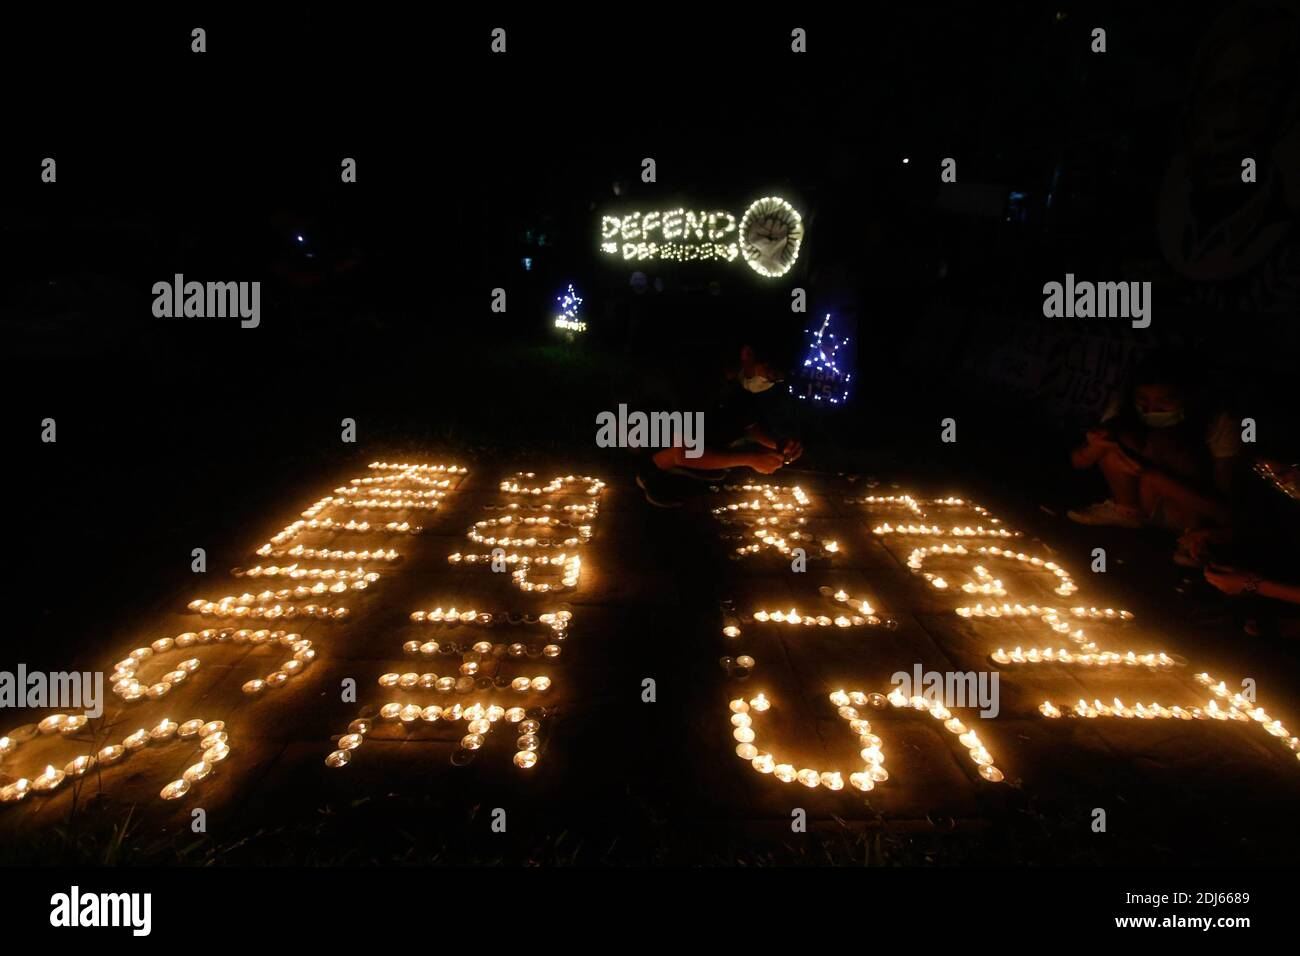 Climate activists lit candles and held LED lighting banners on December 11th 2020. This activity commemorates the five year anniversary of the Paris Agreement with a call to fight for 1.5 and to end the killing of environmental defenders. Quezon City, Philippines. Stock Photo